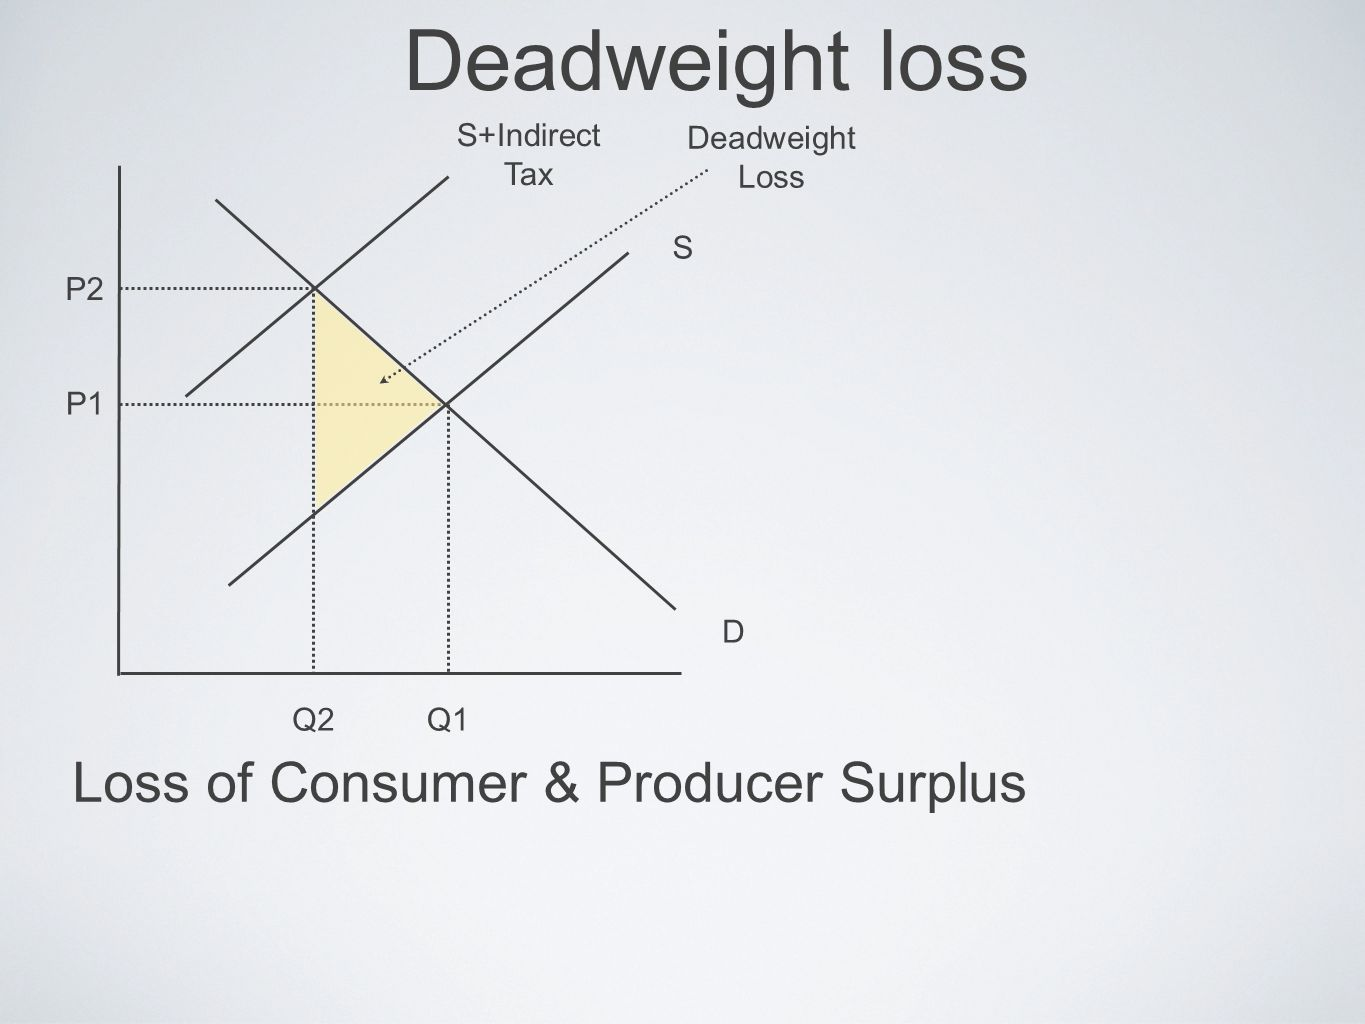 Deadweight loss Loss of Consumer & Producer Surplus S+Indirect Tax